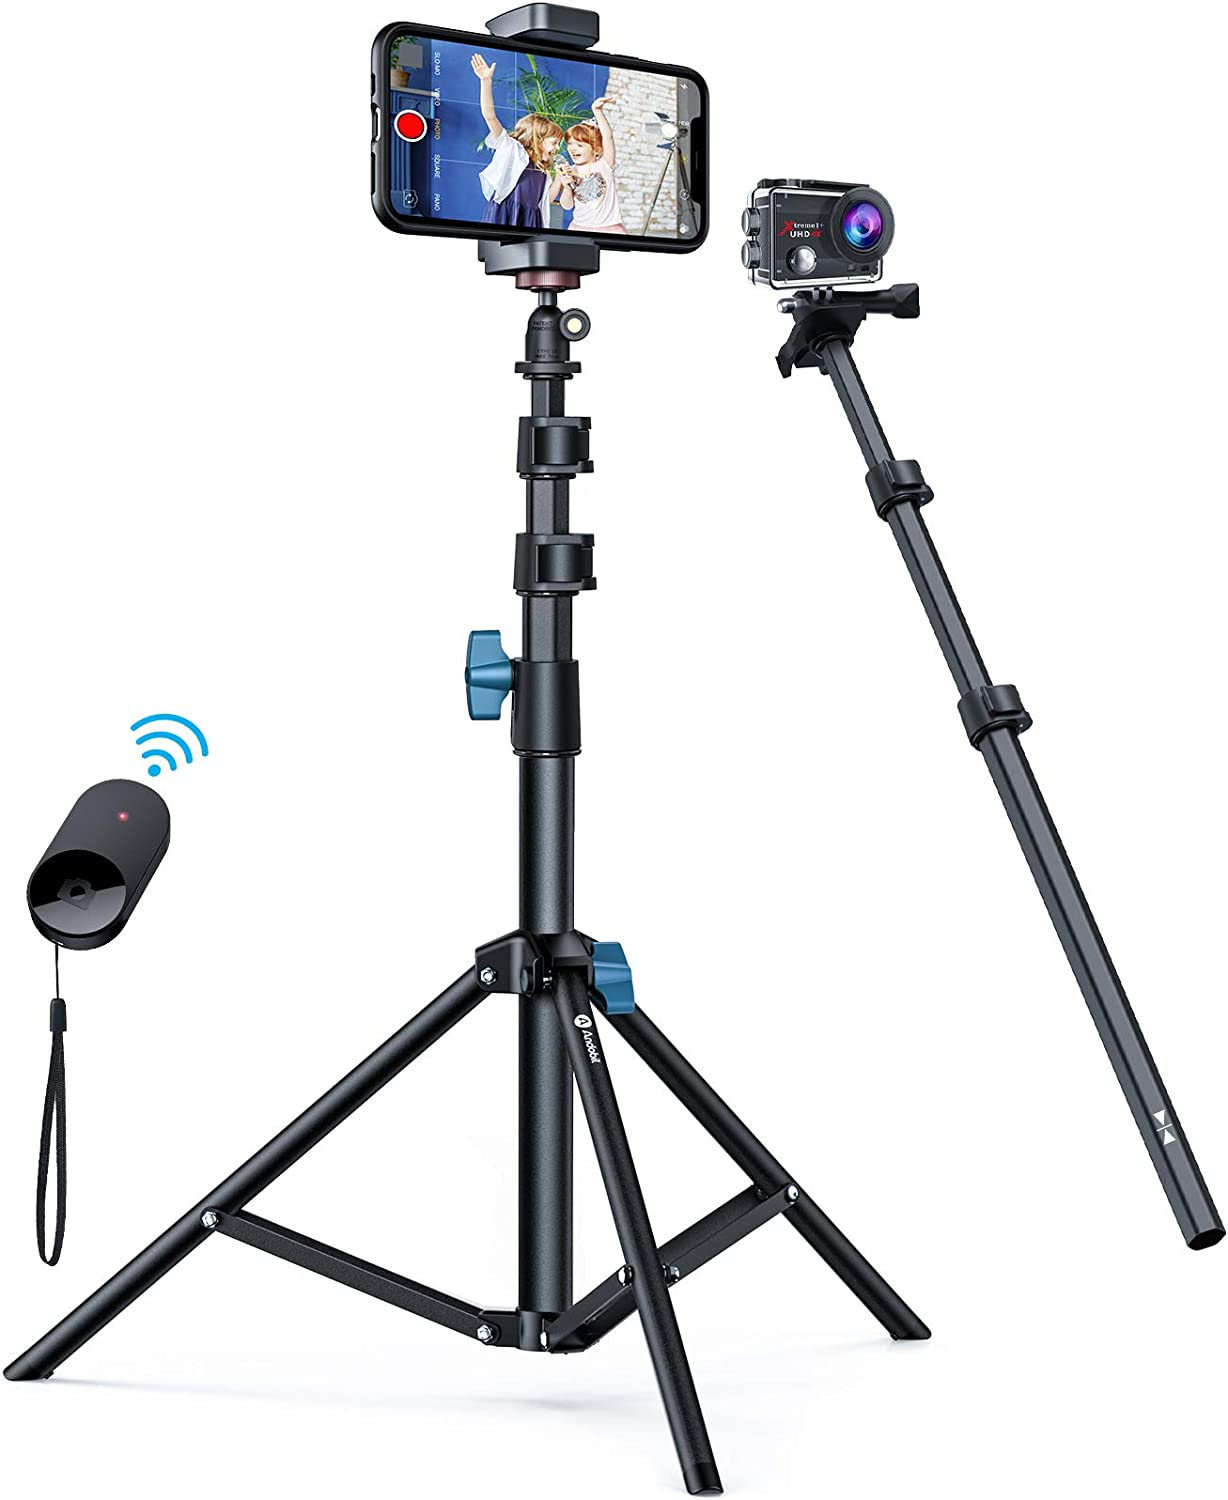 New Andobil 62'' Selfie Stick Tripod Stand with Bluetooth Remote, 3-in-1 Versatile Sturdy Phone Tripod & Flexible Phone Holder Compatible iPhone 12 Pro Max/11/X/8, Samsung,Camera,Heavy Duty [with Bag]